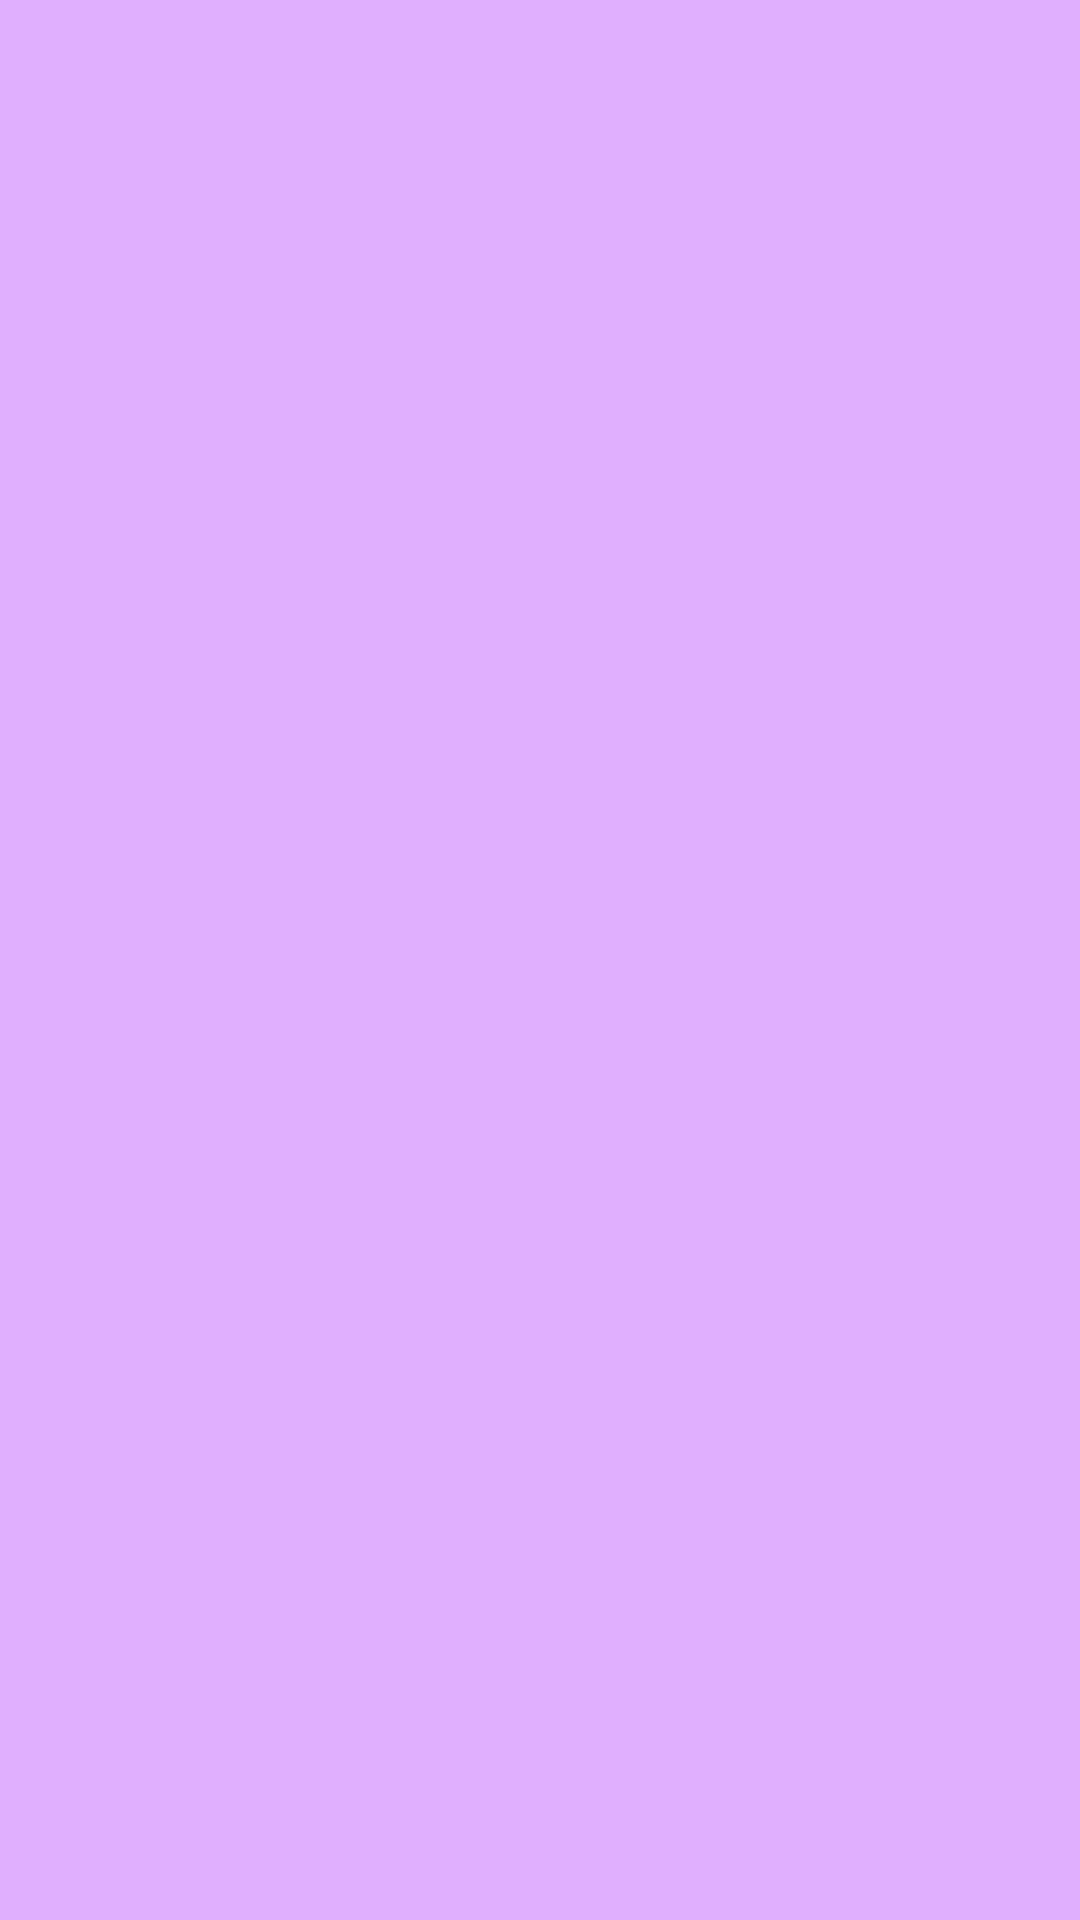 1080x1920 Mauve Solid Color Background